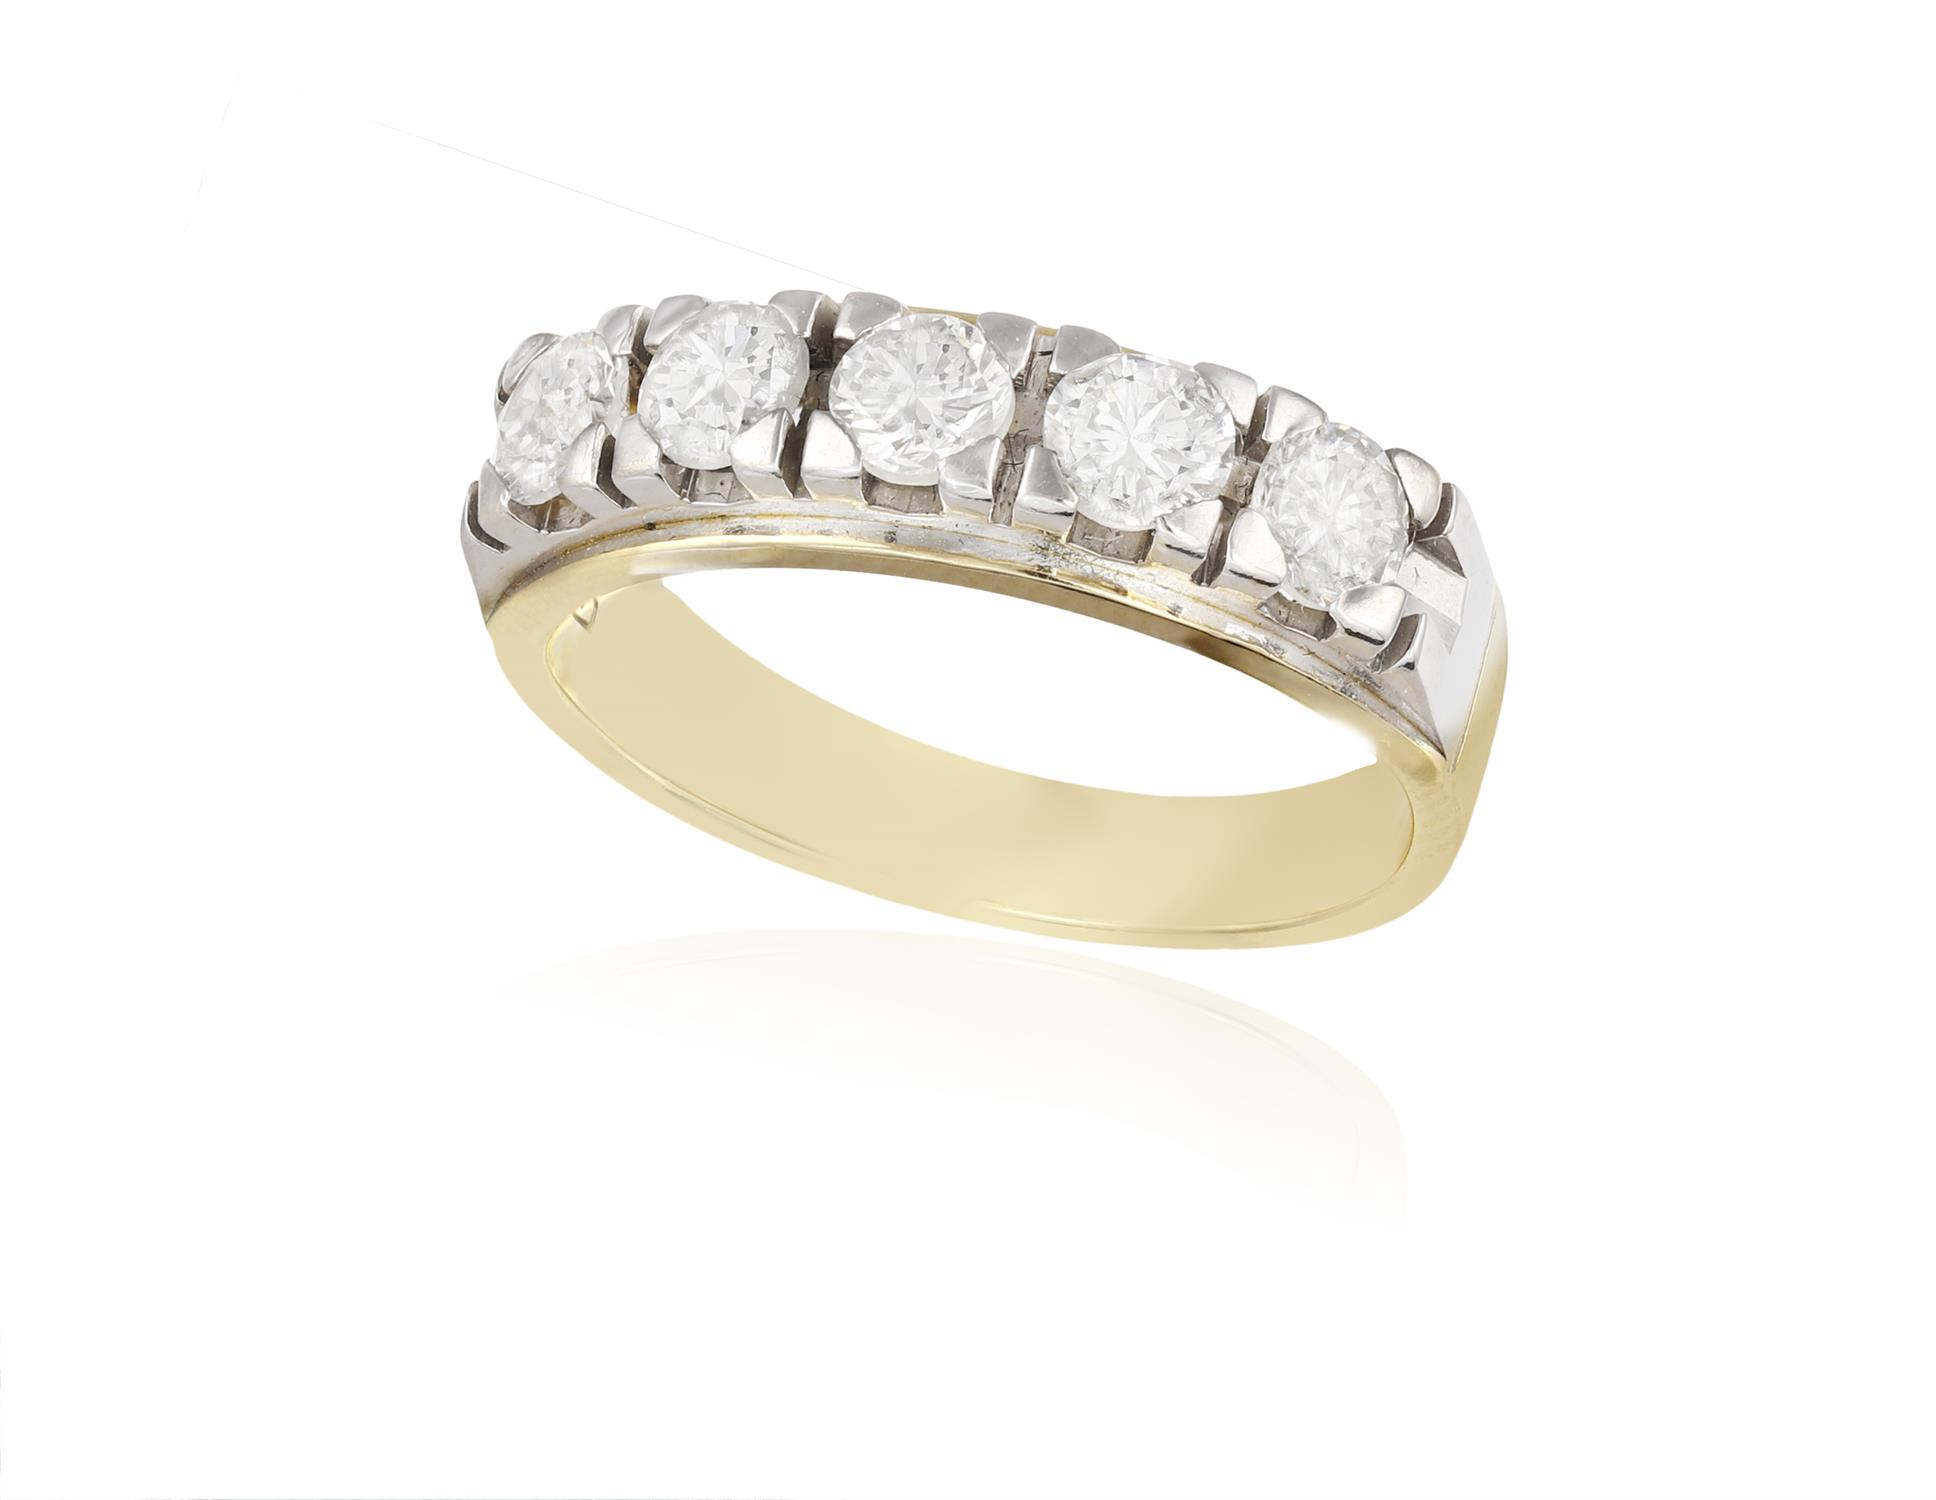 A DIAMOND HALF ETERNITY RING, composed of five brilliant-cut diamonds within four-claw setting,